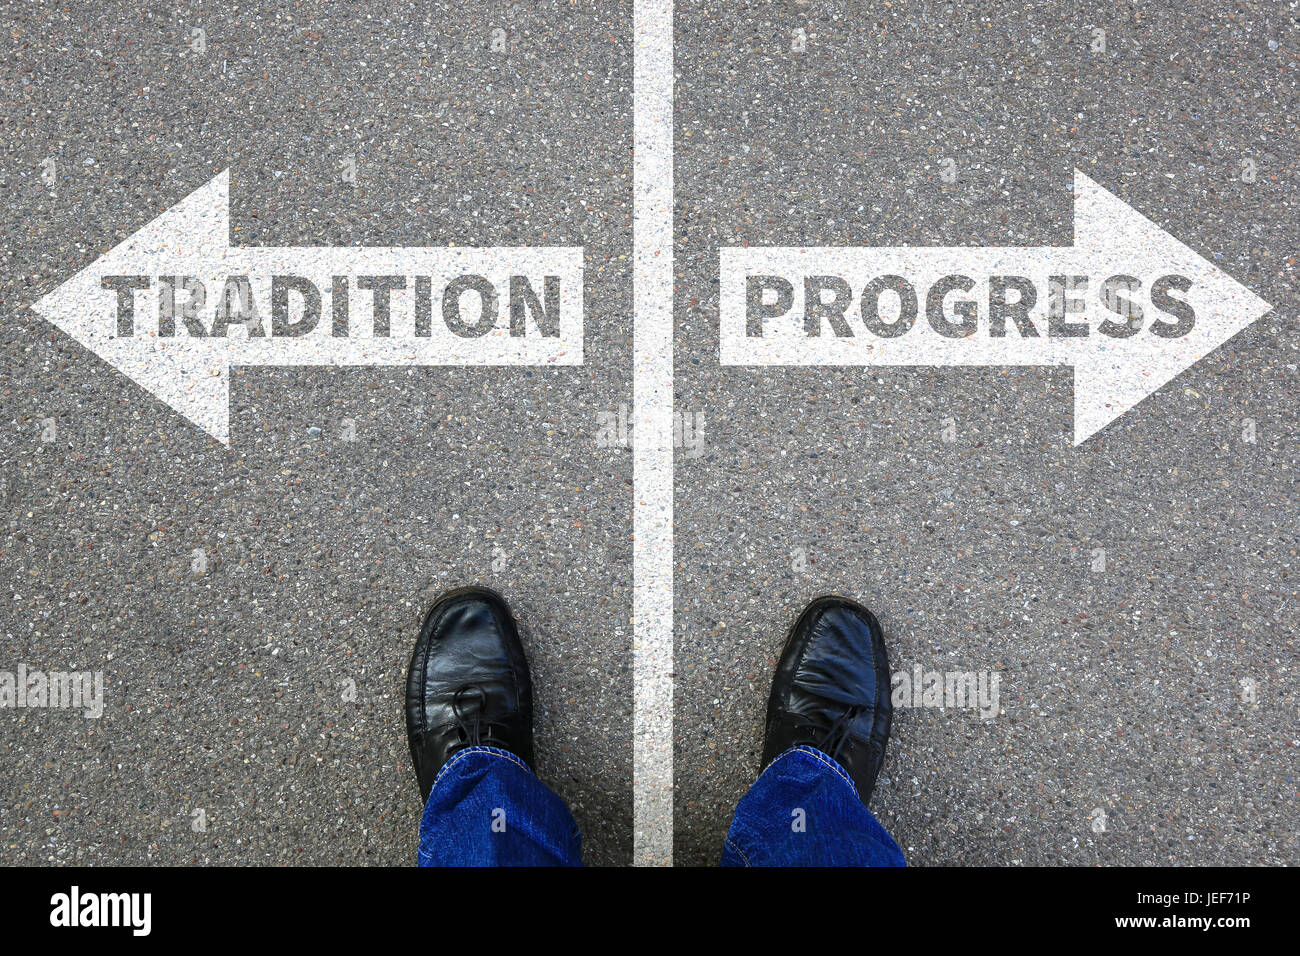 Tradition progress future management assessment analysis company business concept businessman reward - Stock Image